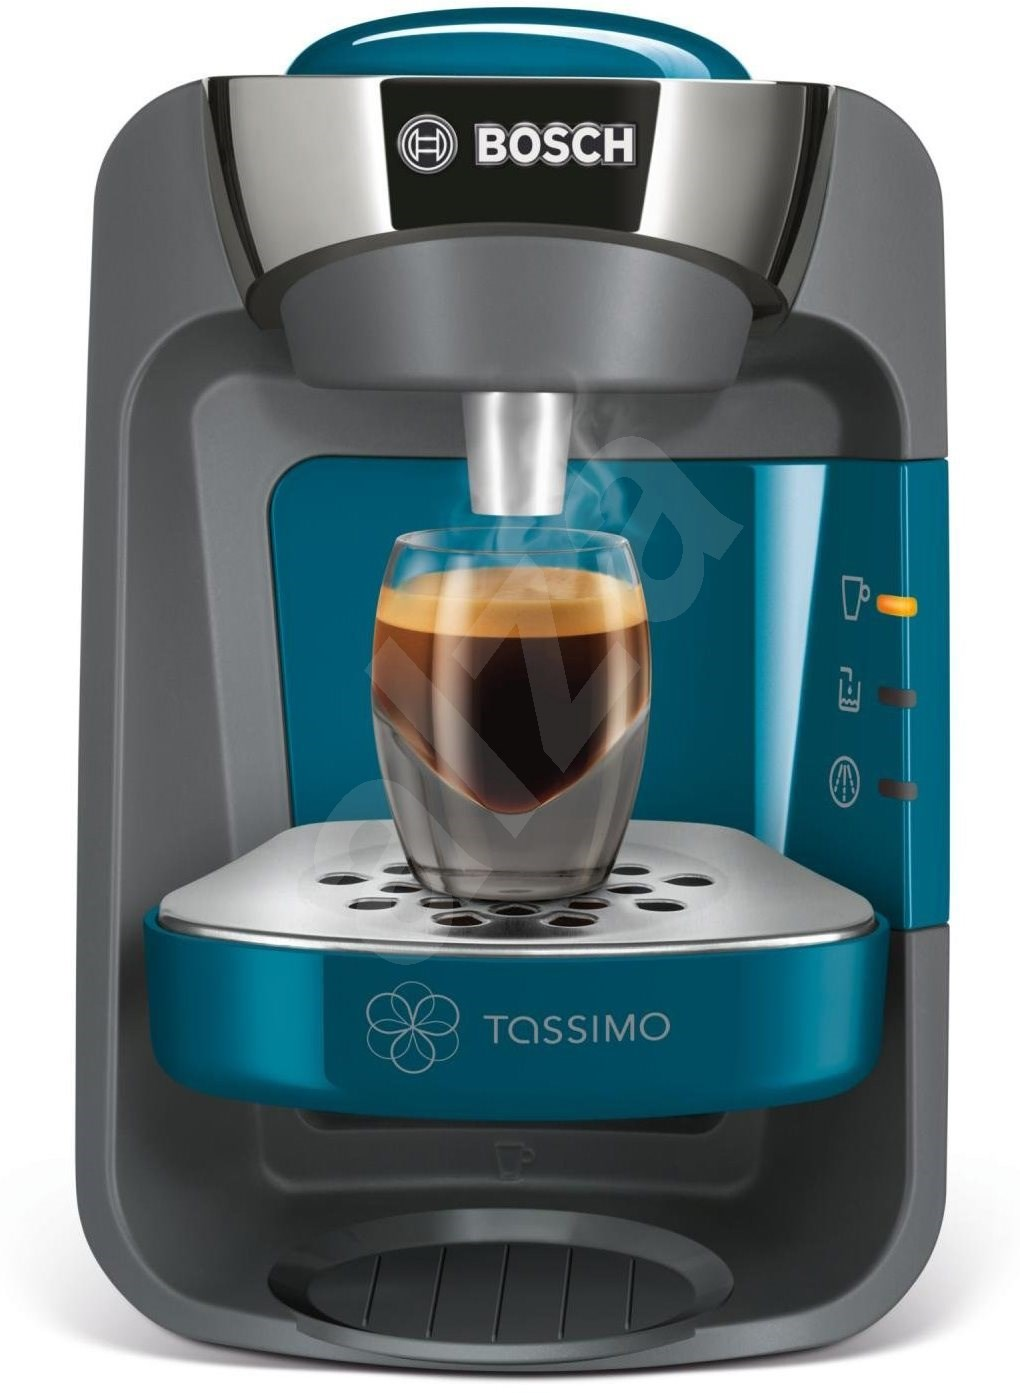 bosch tassimo tas3205 capsule coffee machine. Black Bedroom Furniture Sets. Home Design Ideas